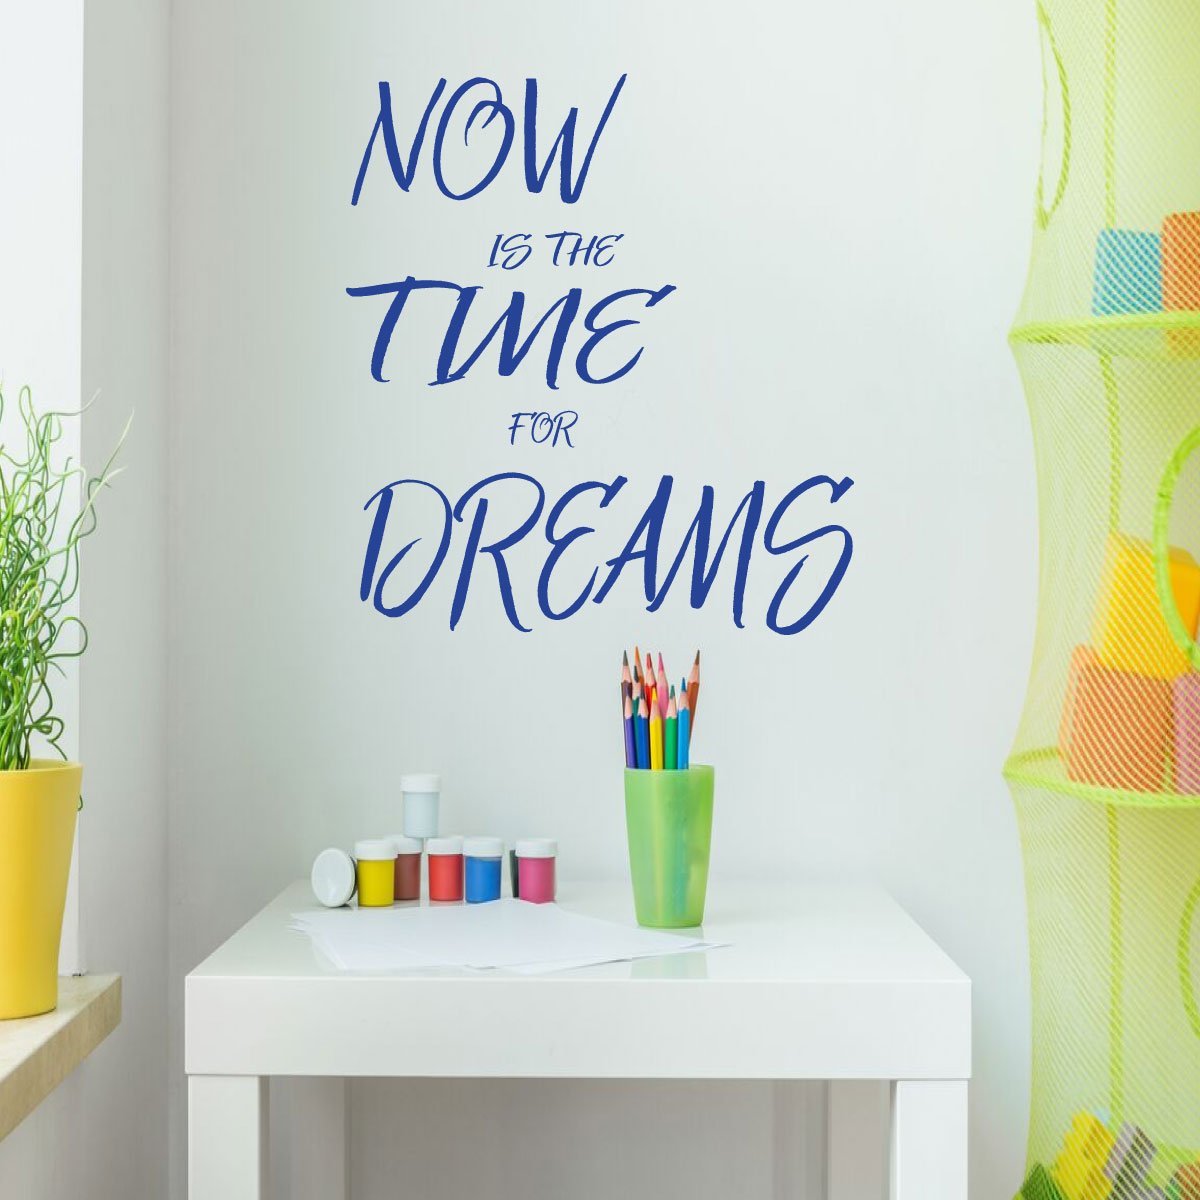 "Dream Quote Wall Decal Home Decor for Living Room, Bedroom, Playroom, Preschool Classroom -""Now is the time for dreams"" Vinyl Sticker Lettering"